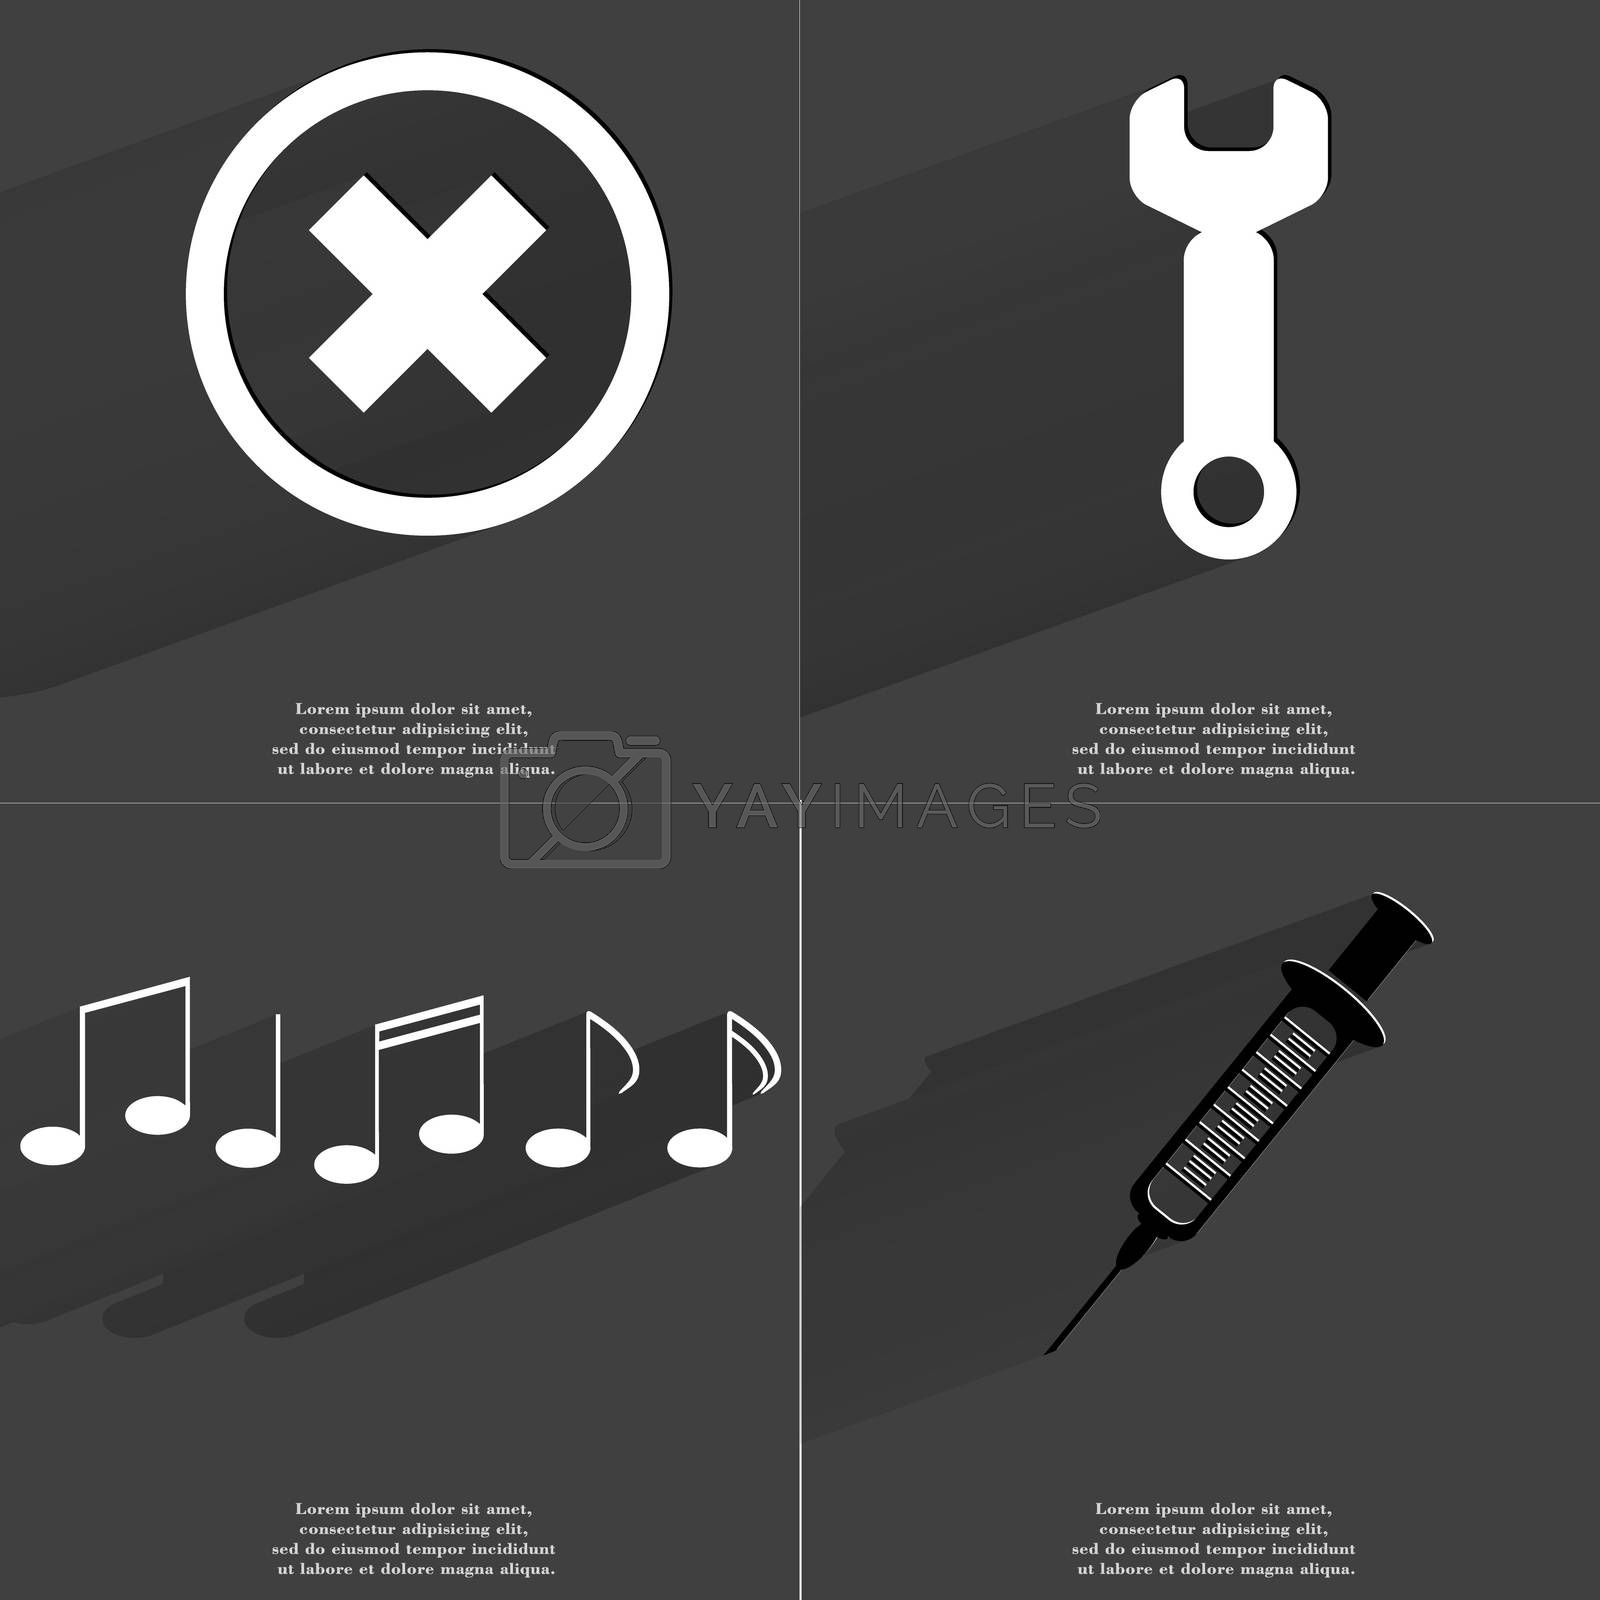 Royalty free image of Stop sign, Wrench, Notes, Syringe. Symbols with long shadow. Flat design by serhii_lohvyniuk